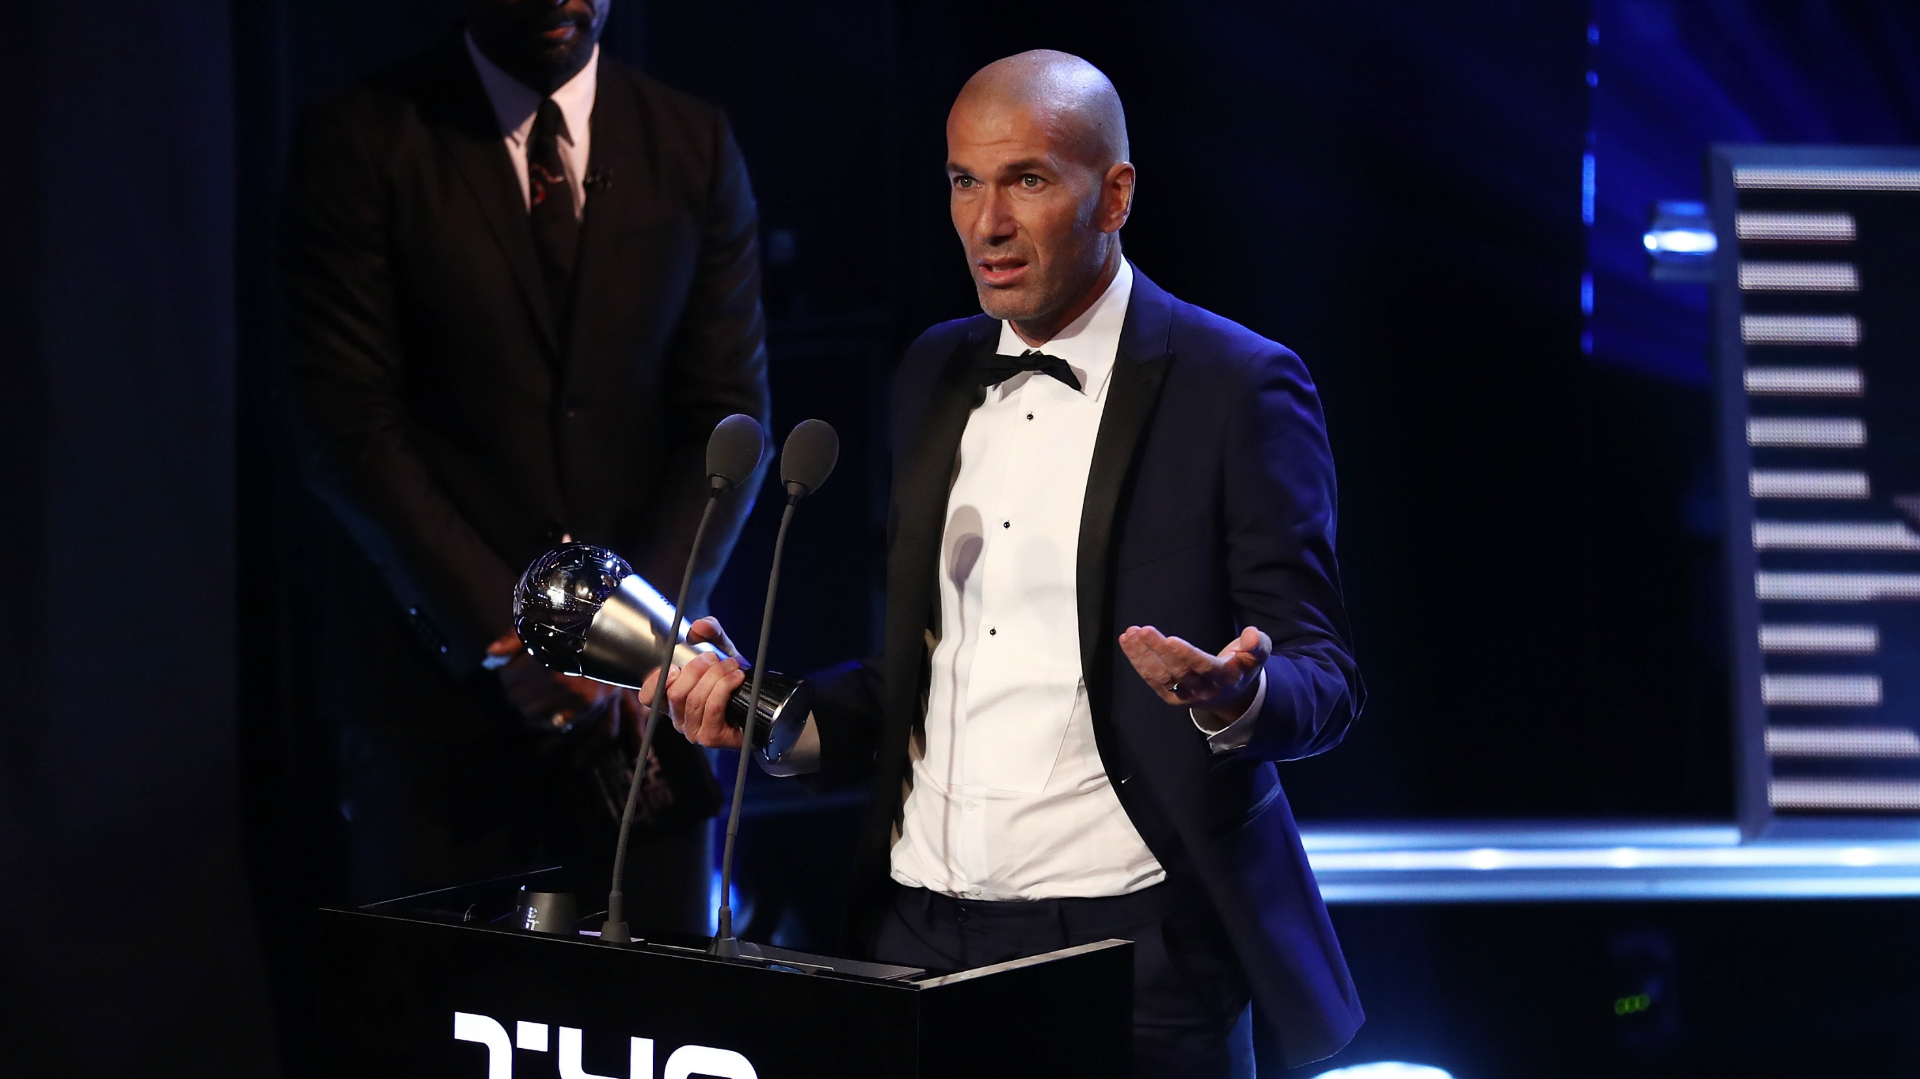 Ronaldo named Federation Internationale de Football Association men's best player